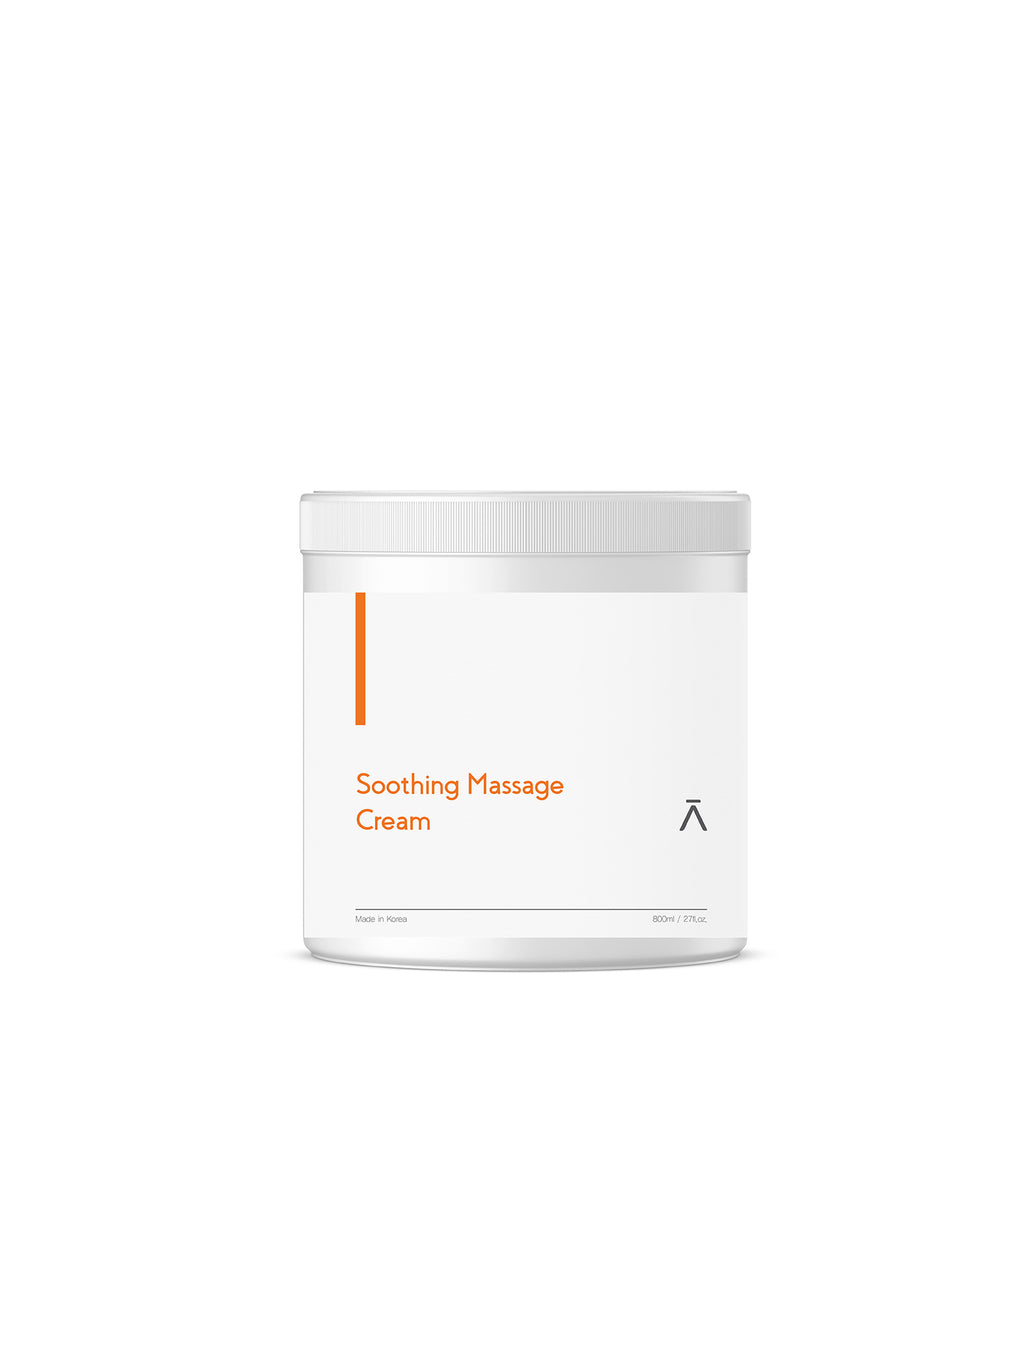 Soothing Massage Cream (Relaxing Massage Cream)